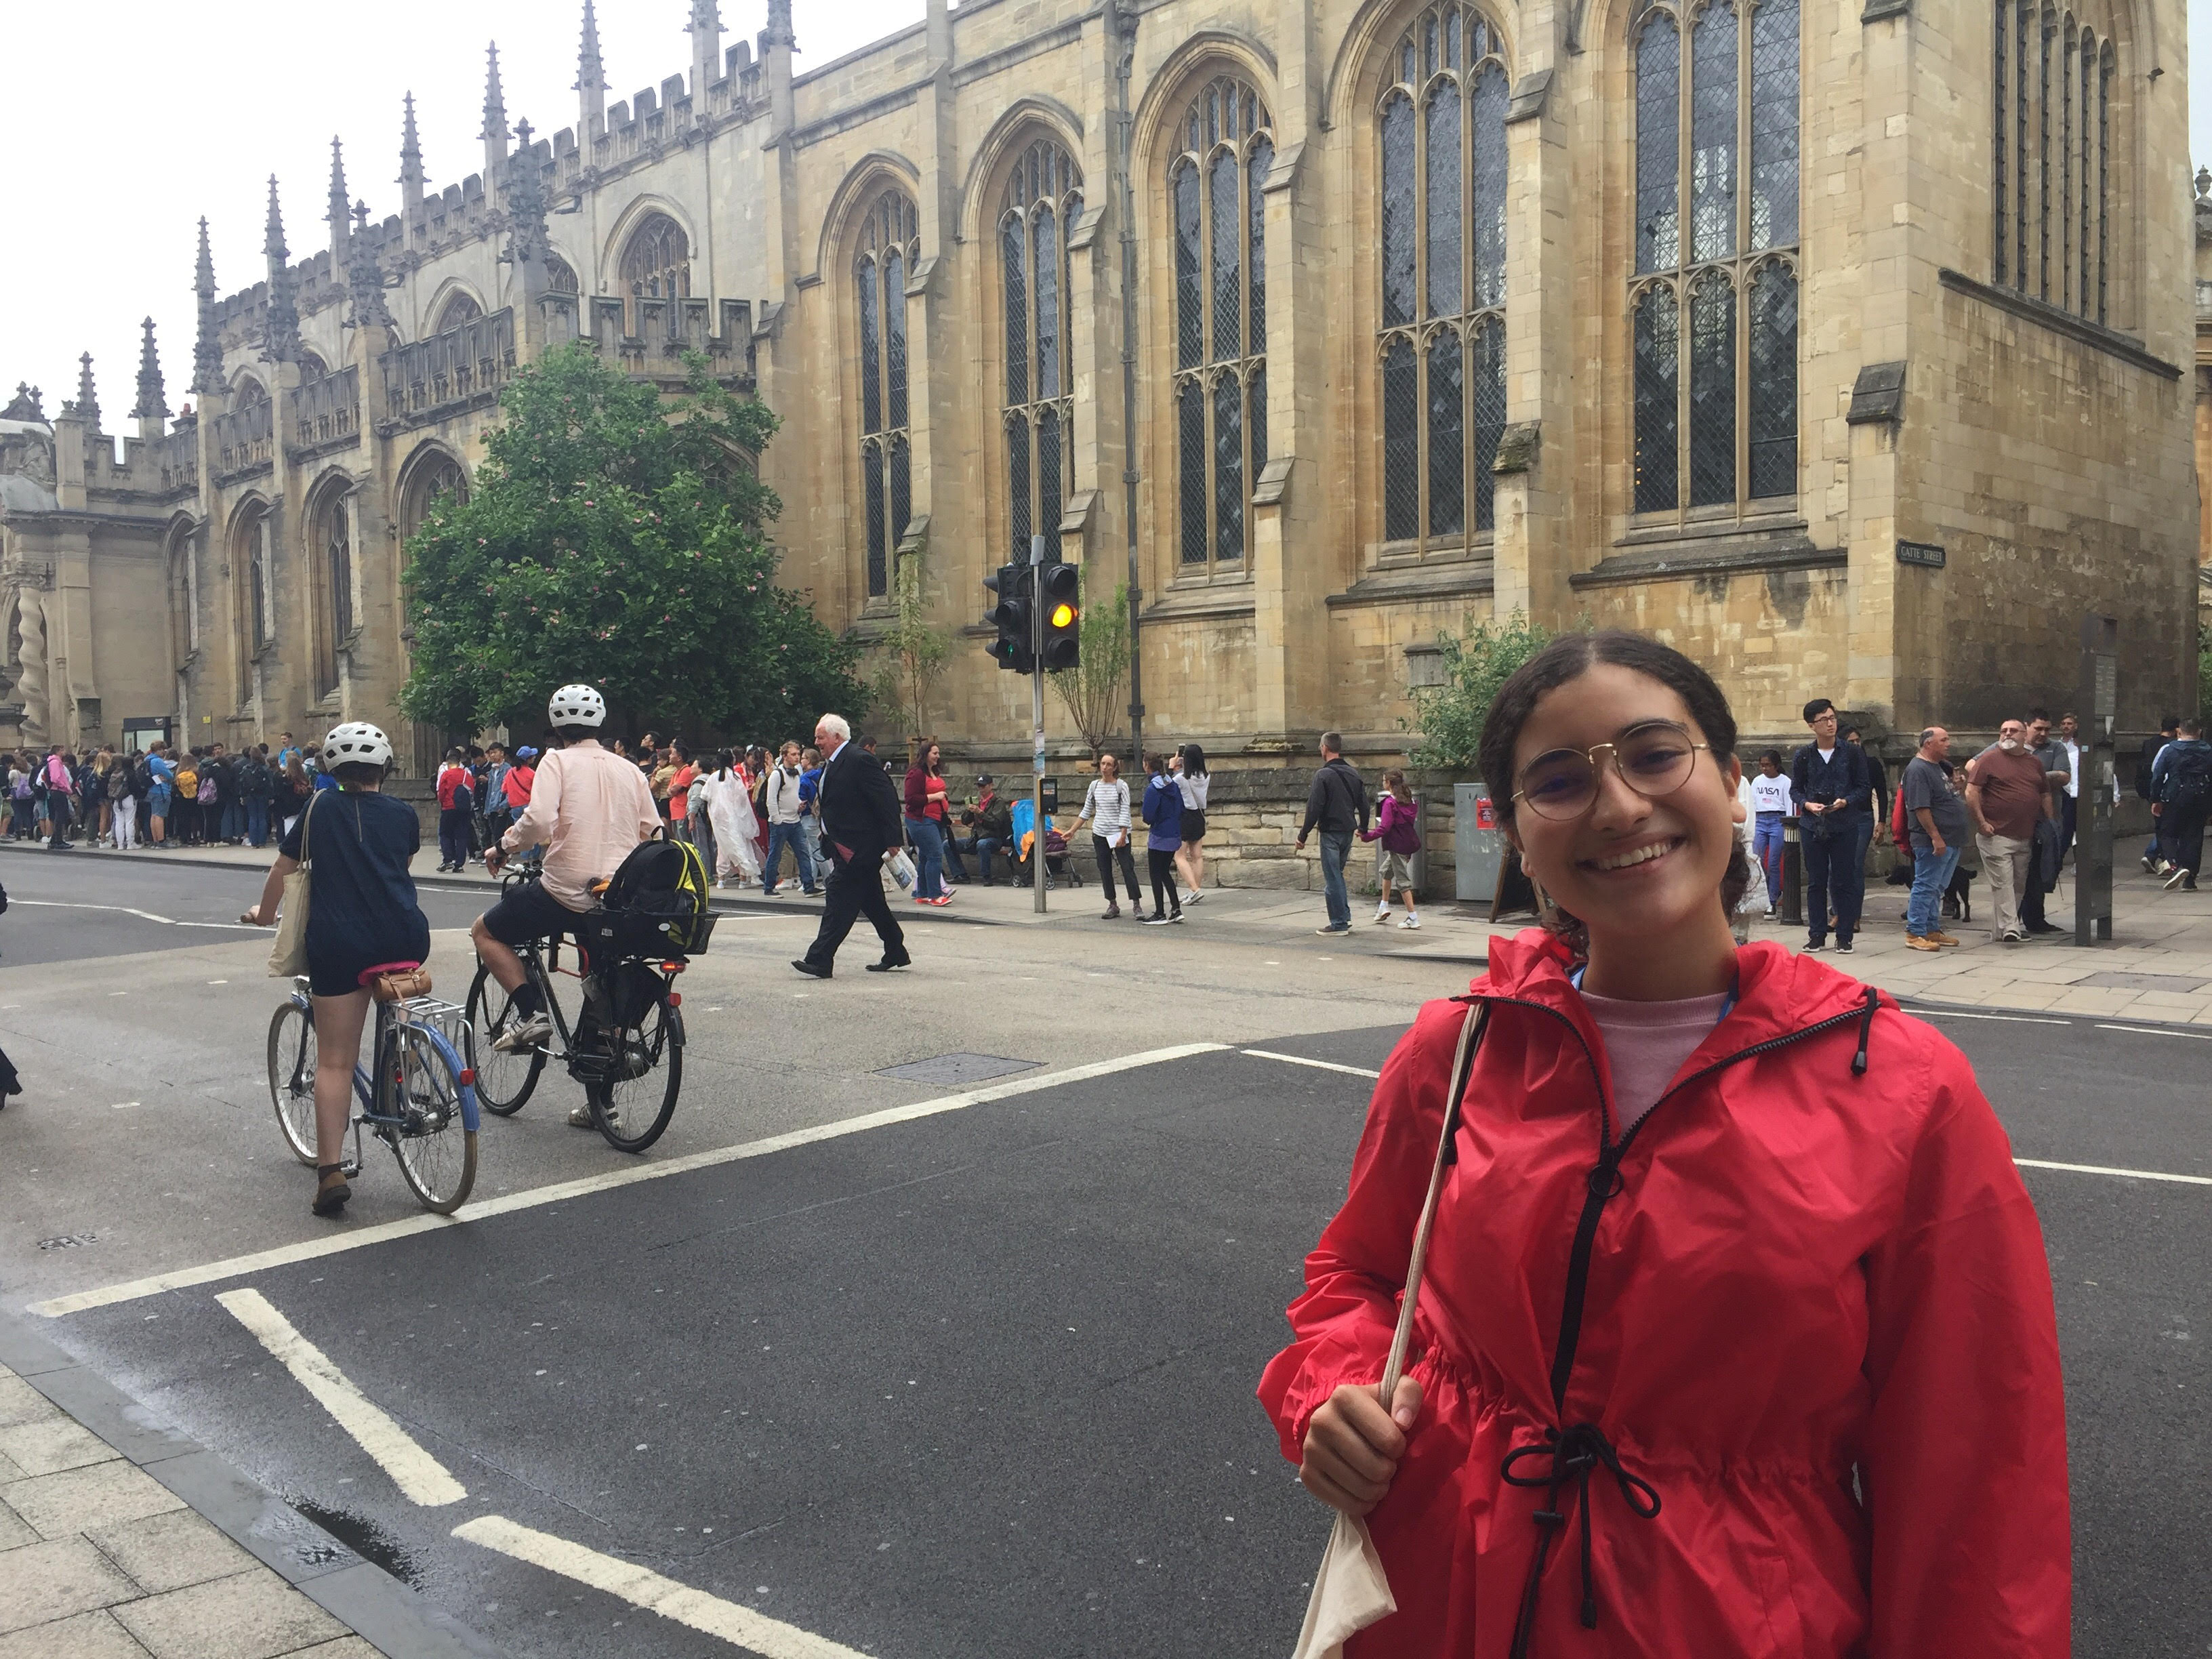 Exploring the historic city of Oxford